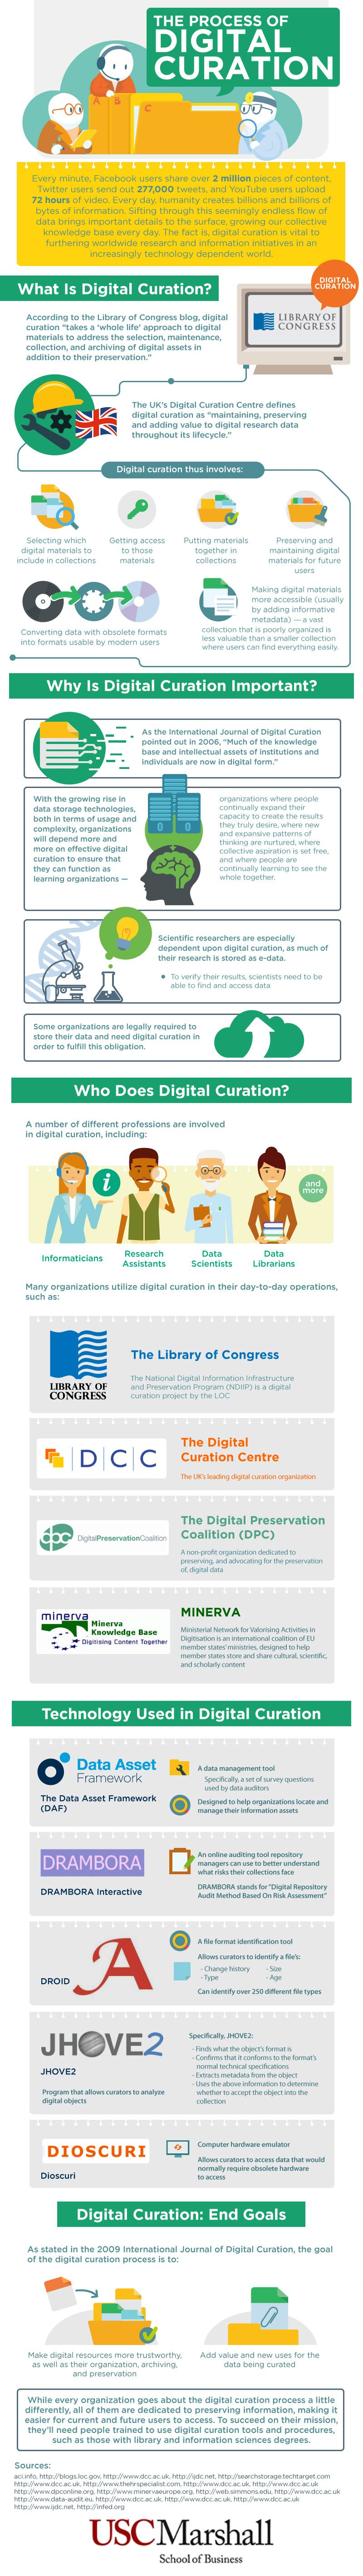 The Process Of Digital Curation #Infographic